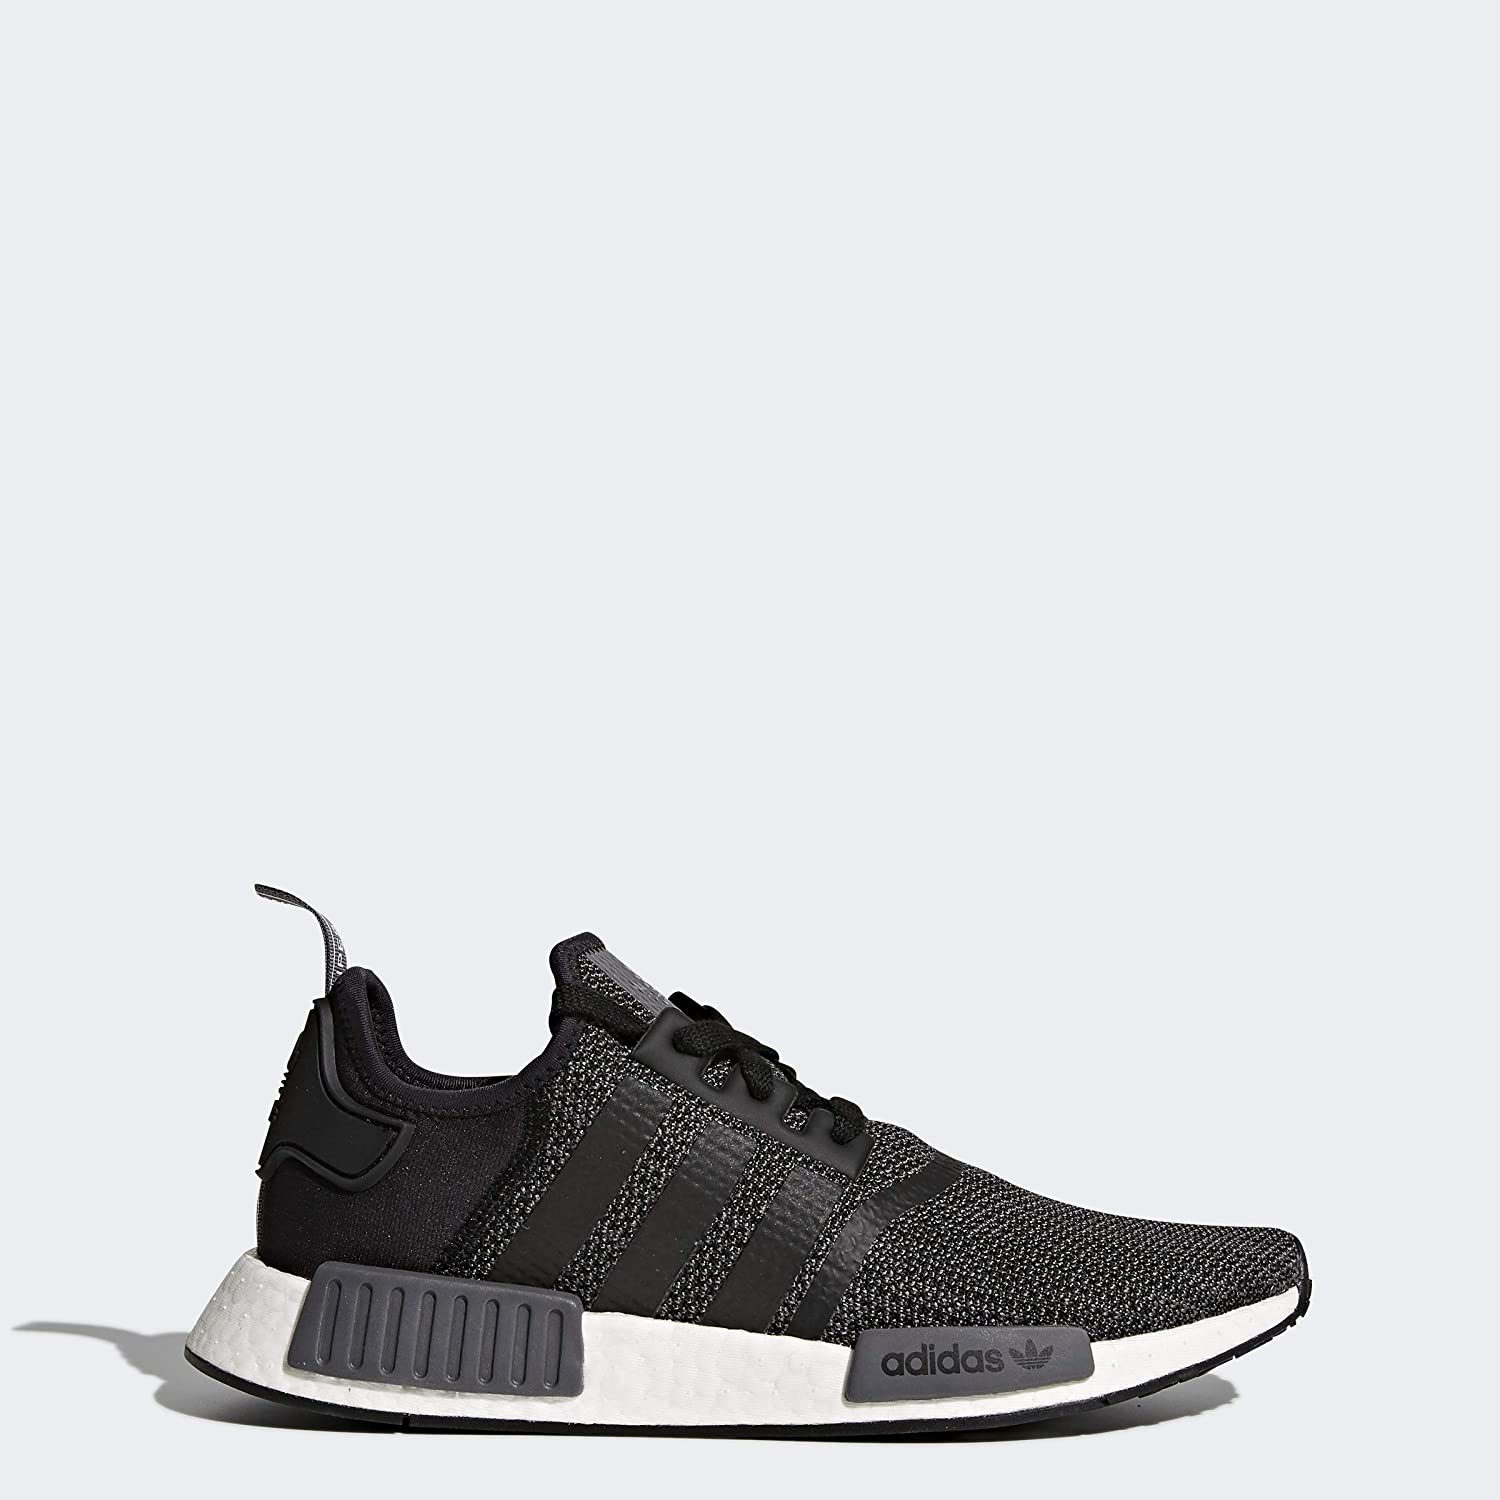 adidas NMD_R1 Shoes Men s, Black, Size 8.5